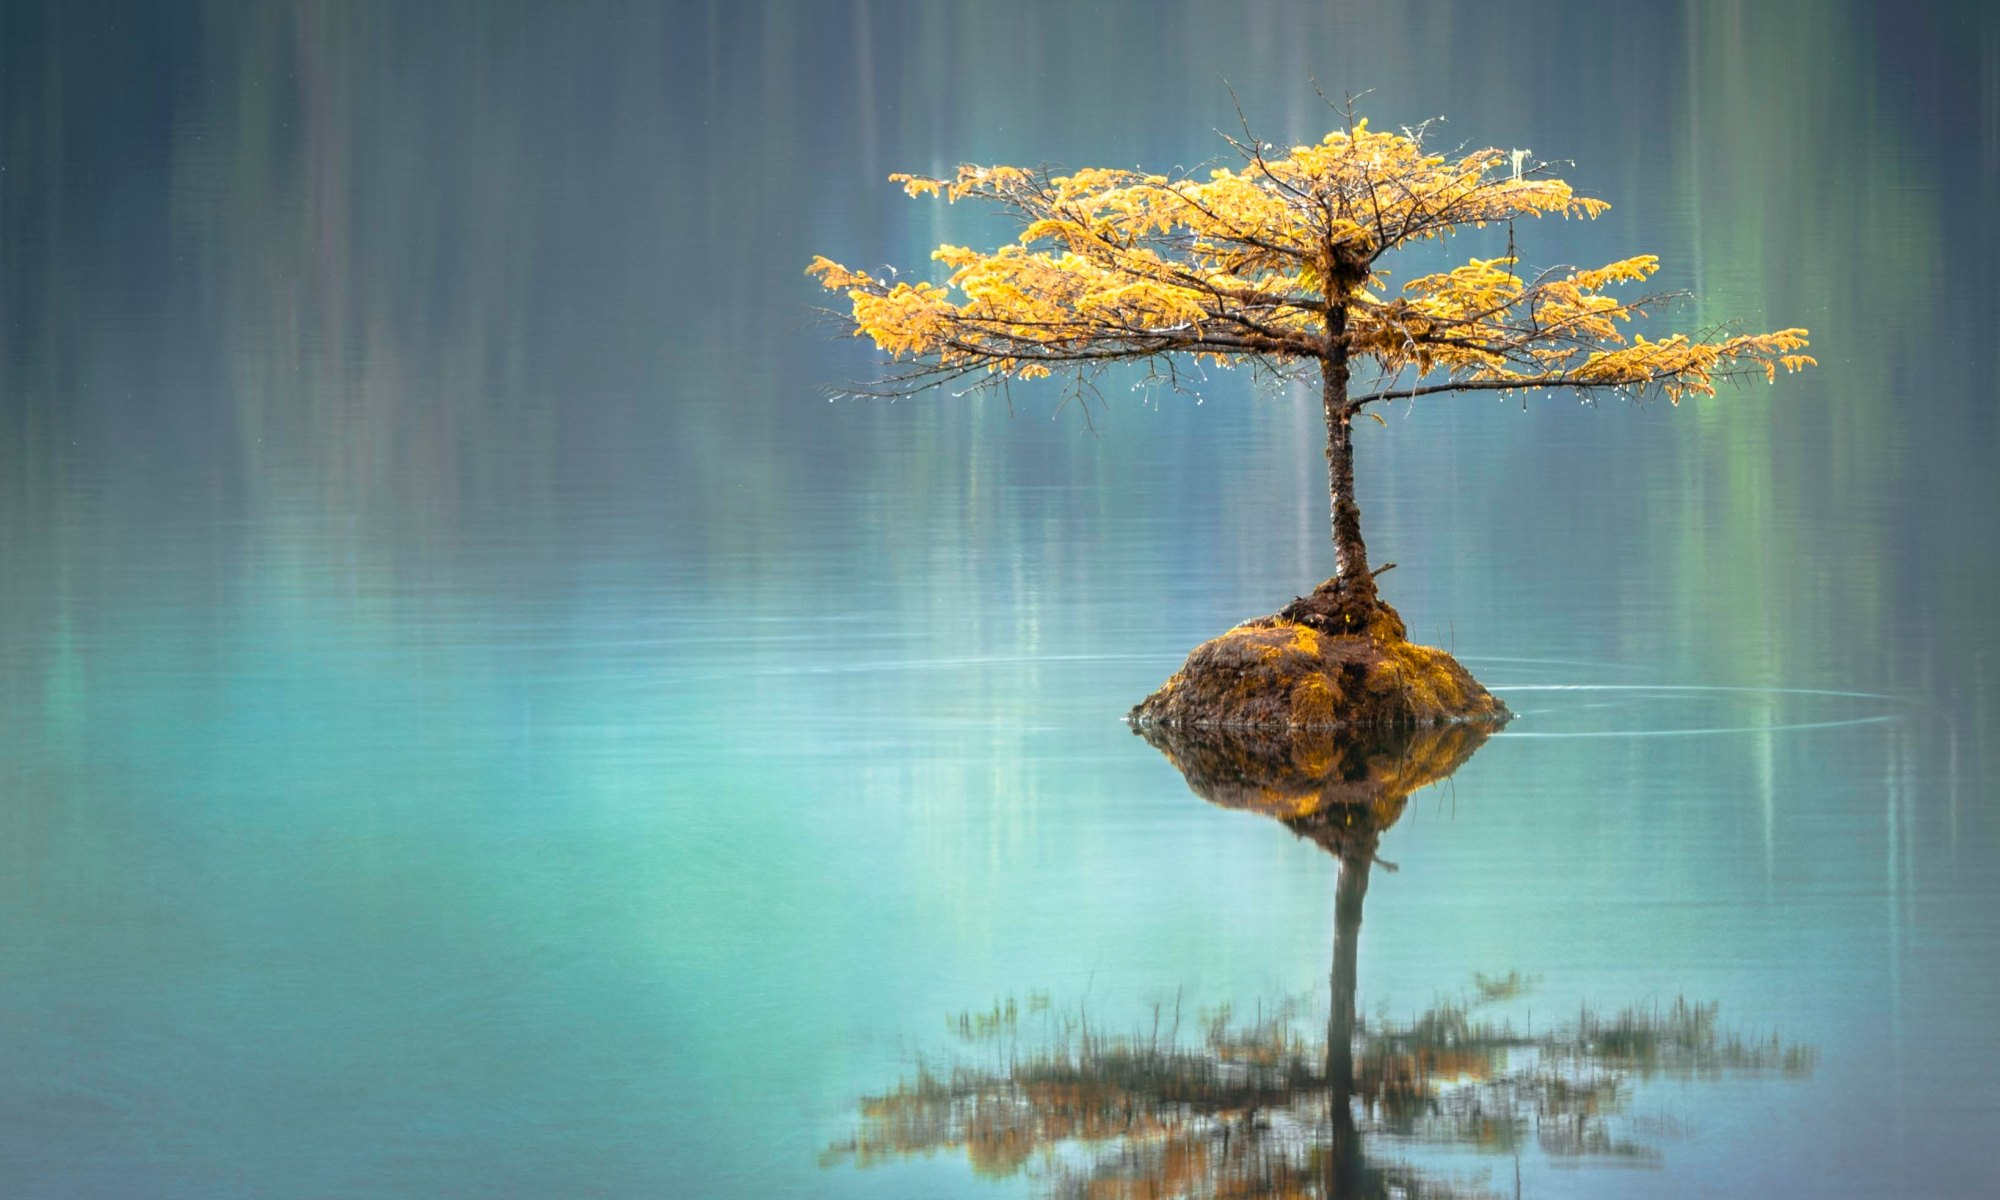 Small tree reflected in water.